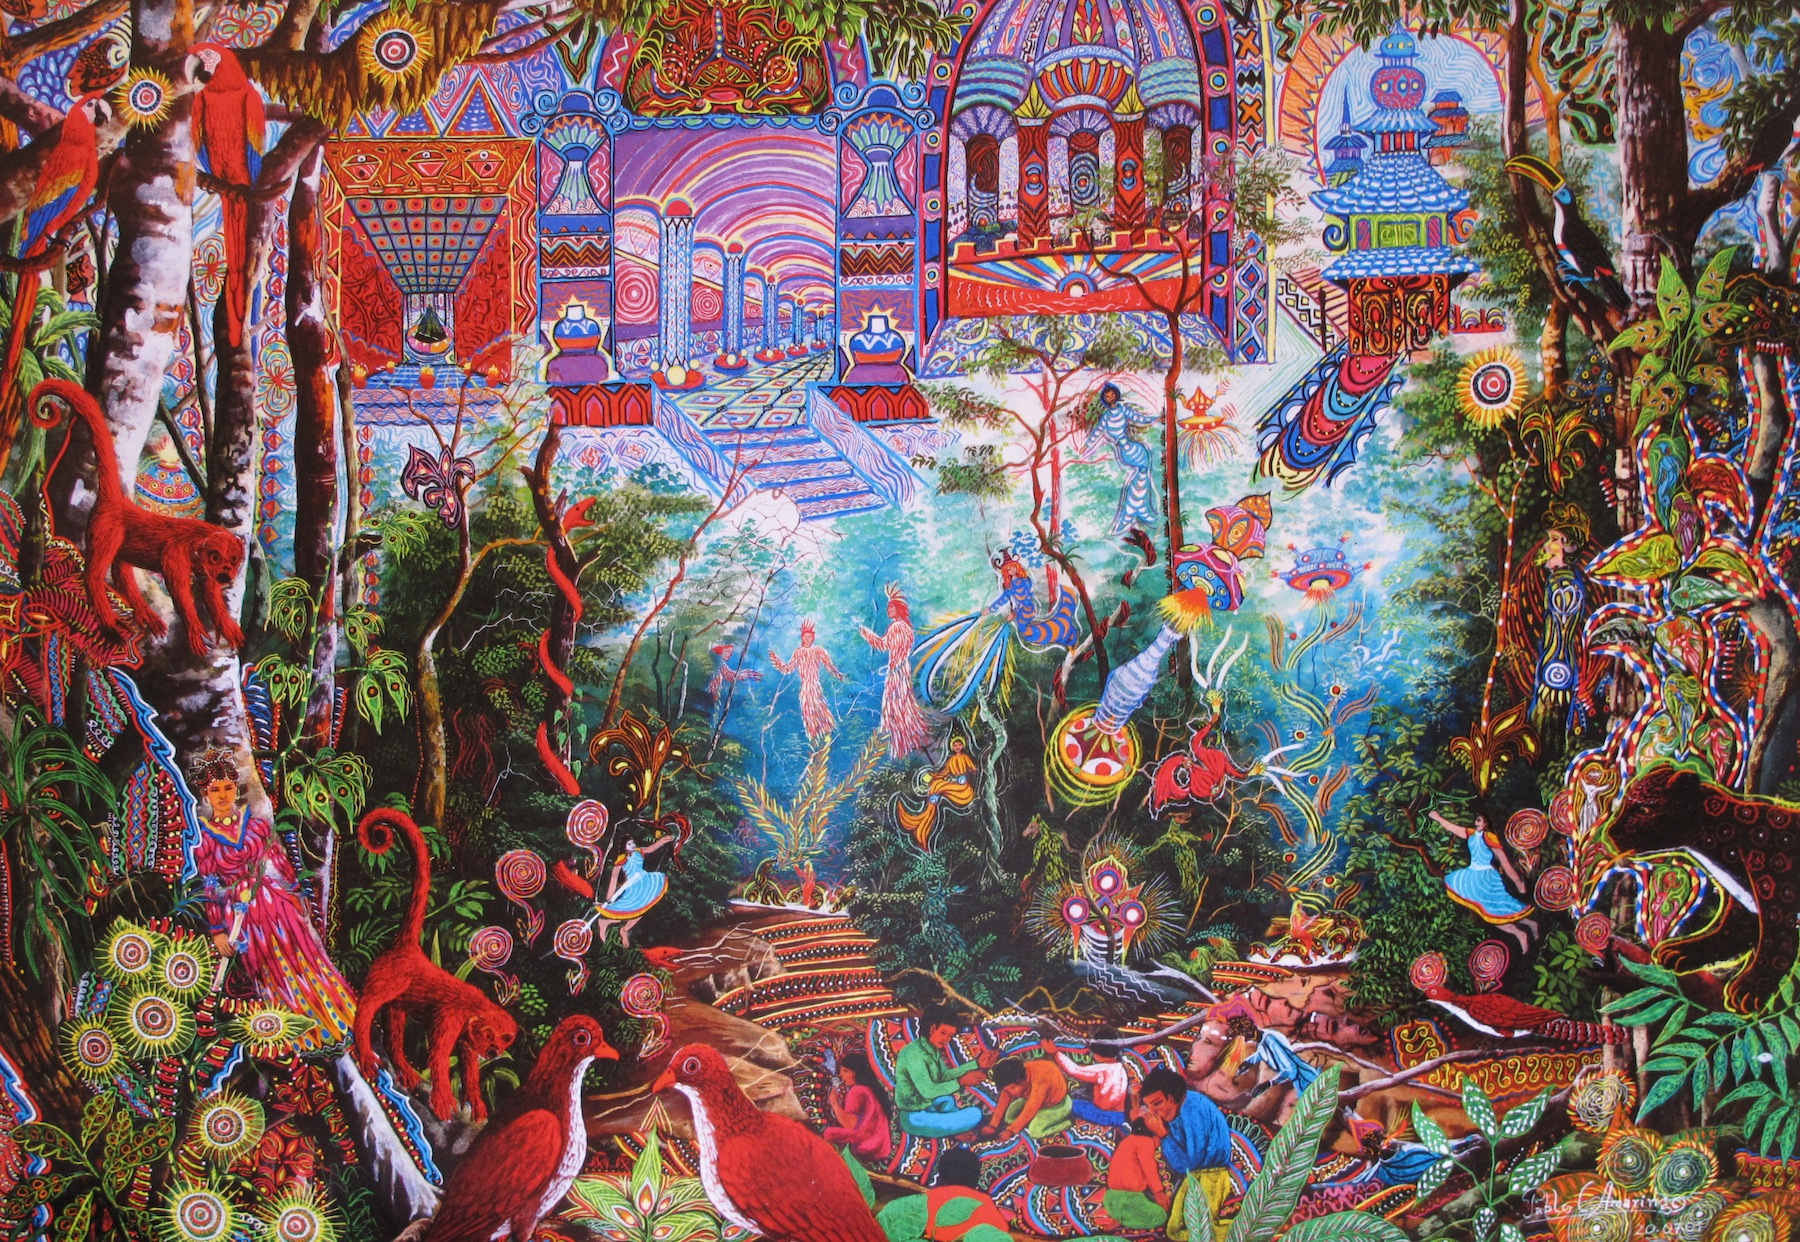 Ayahuasca - The Vine of the Soul